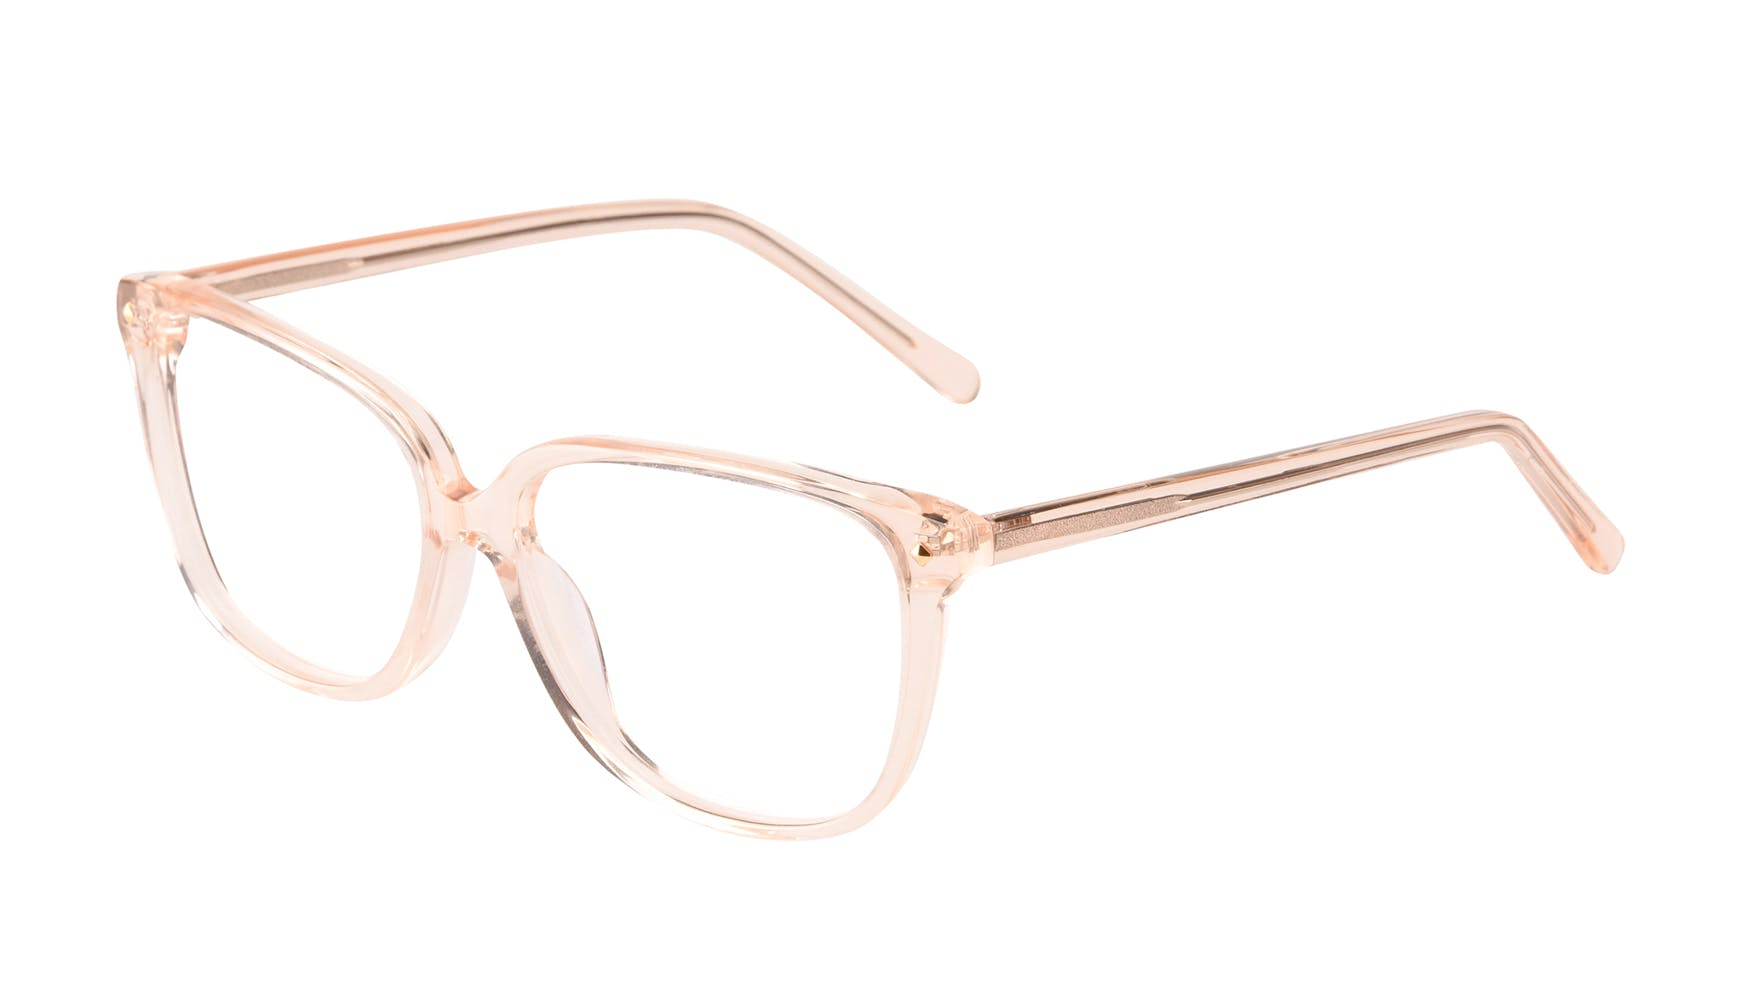 Affordable Fashion Glasses Rectangle Square Eyeglasses Women Muse Blond Tilt